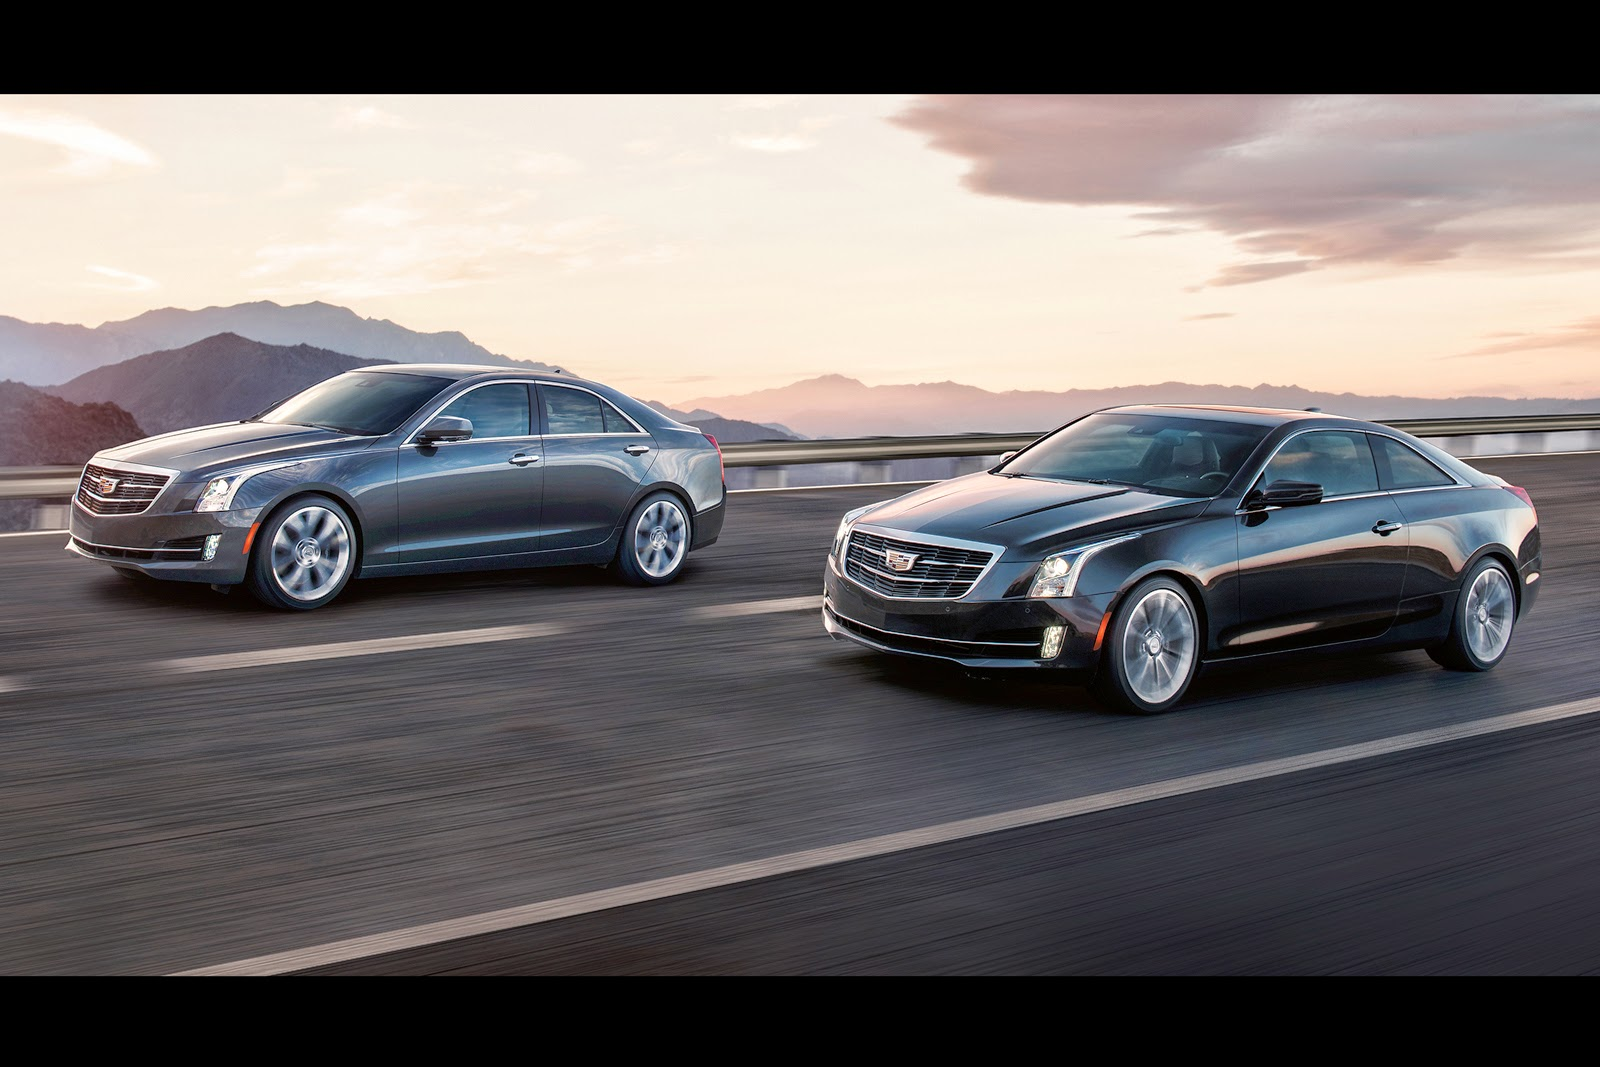 2015 cadillac ats sedan goes officially wreathless. Black Bedroom Furniture Sets. Home Design Ideas